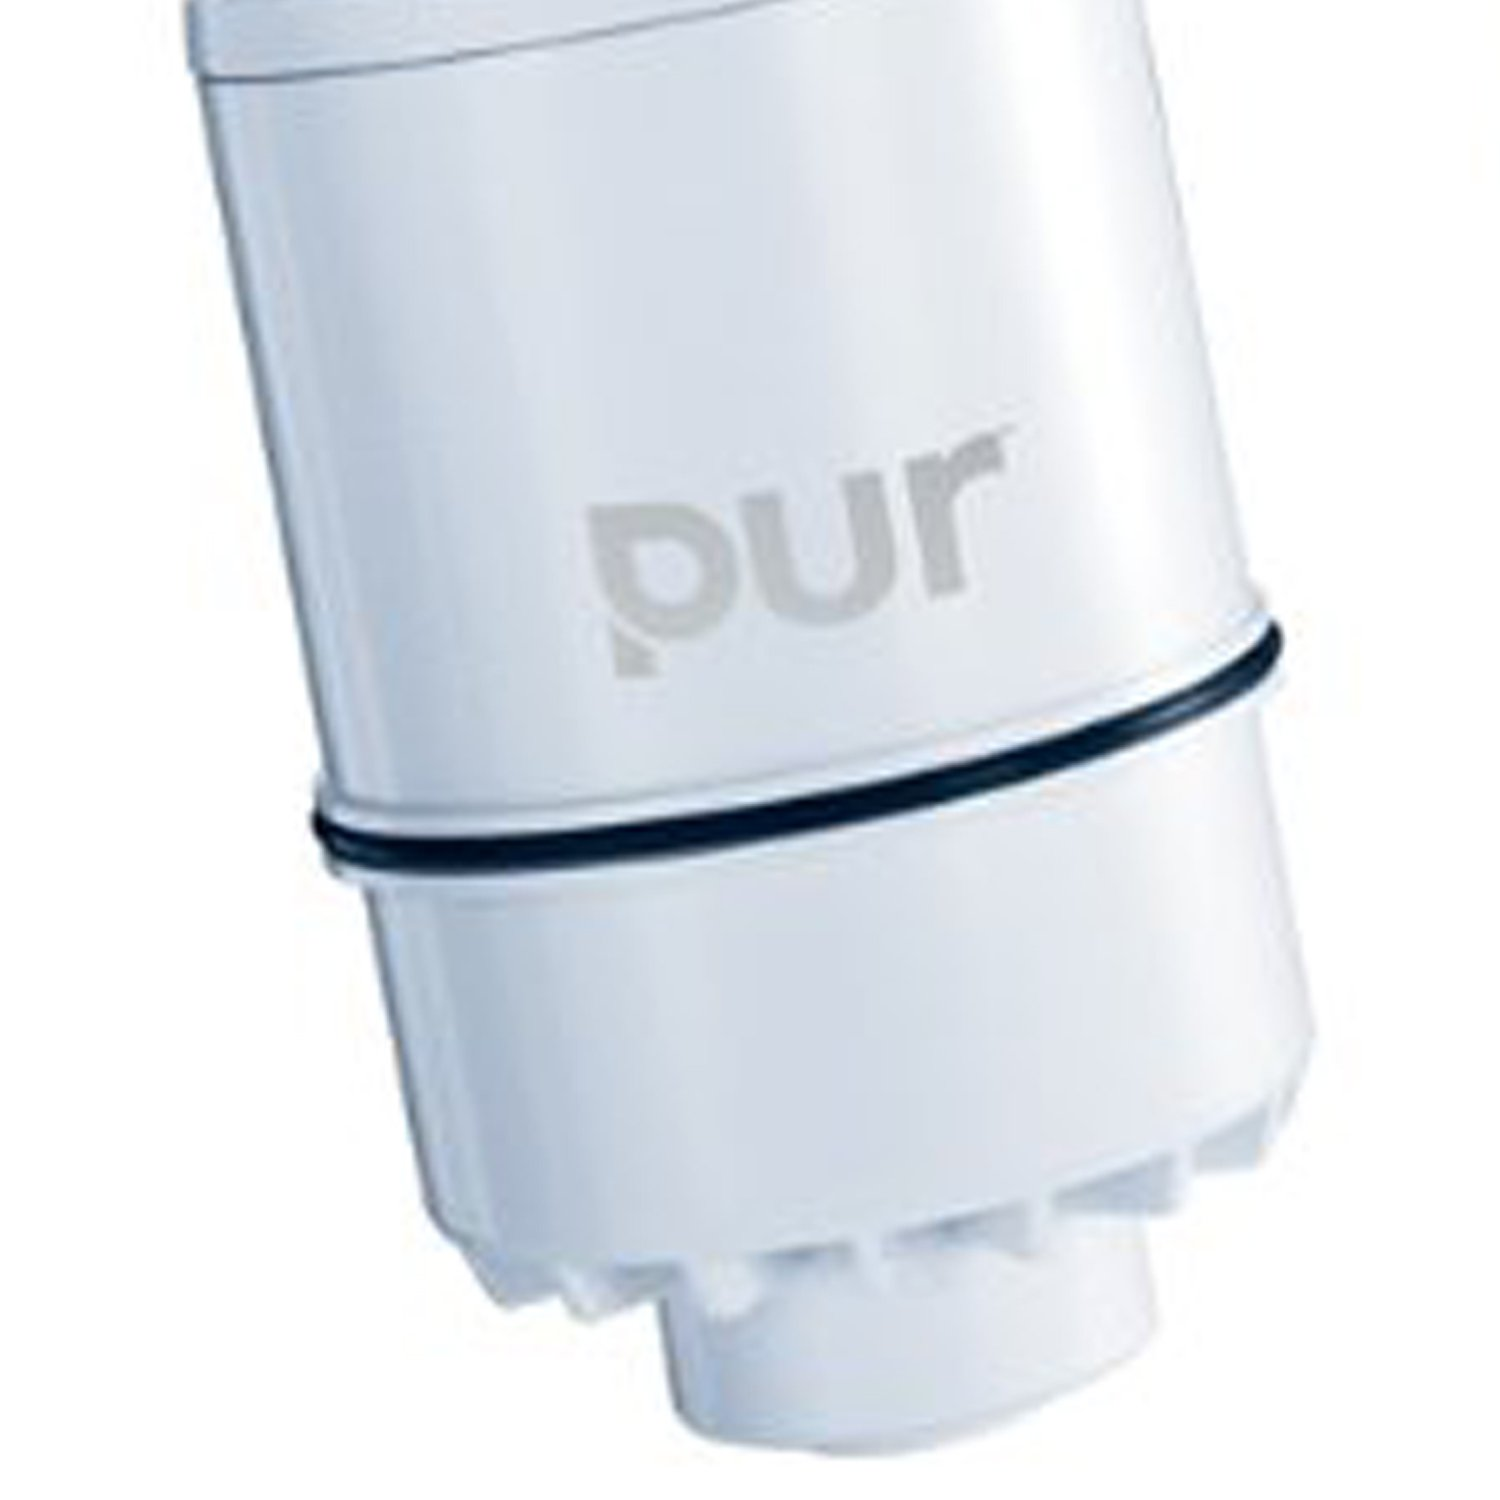 PUR 2 Stage Faucet Mount Filter